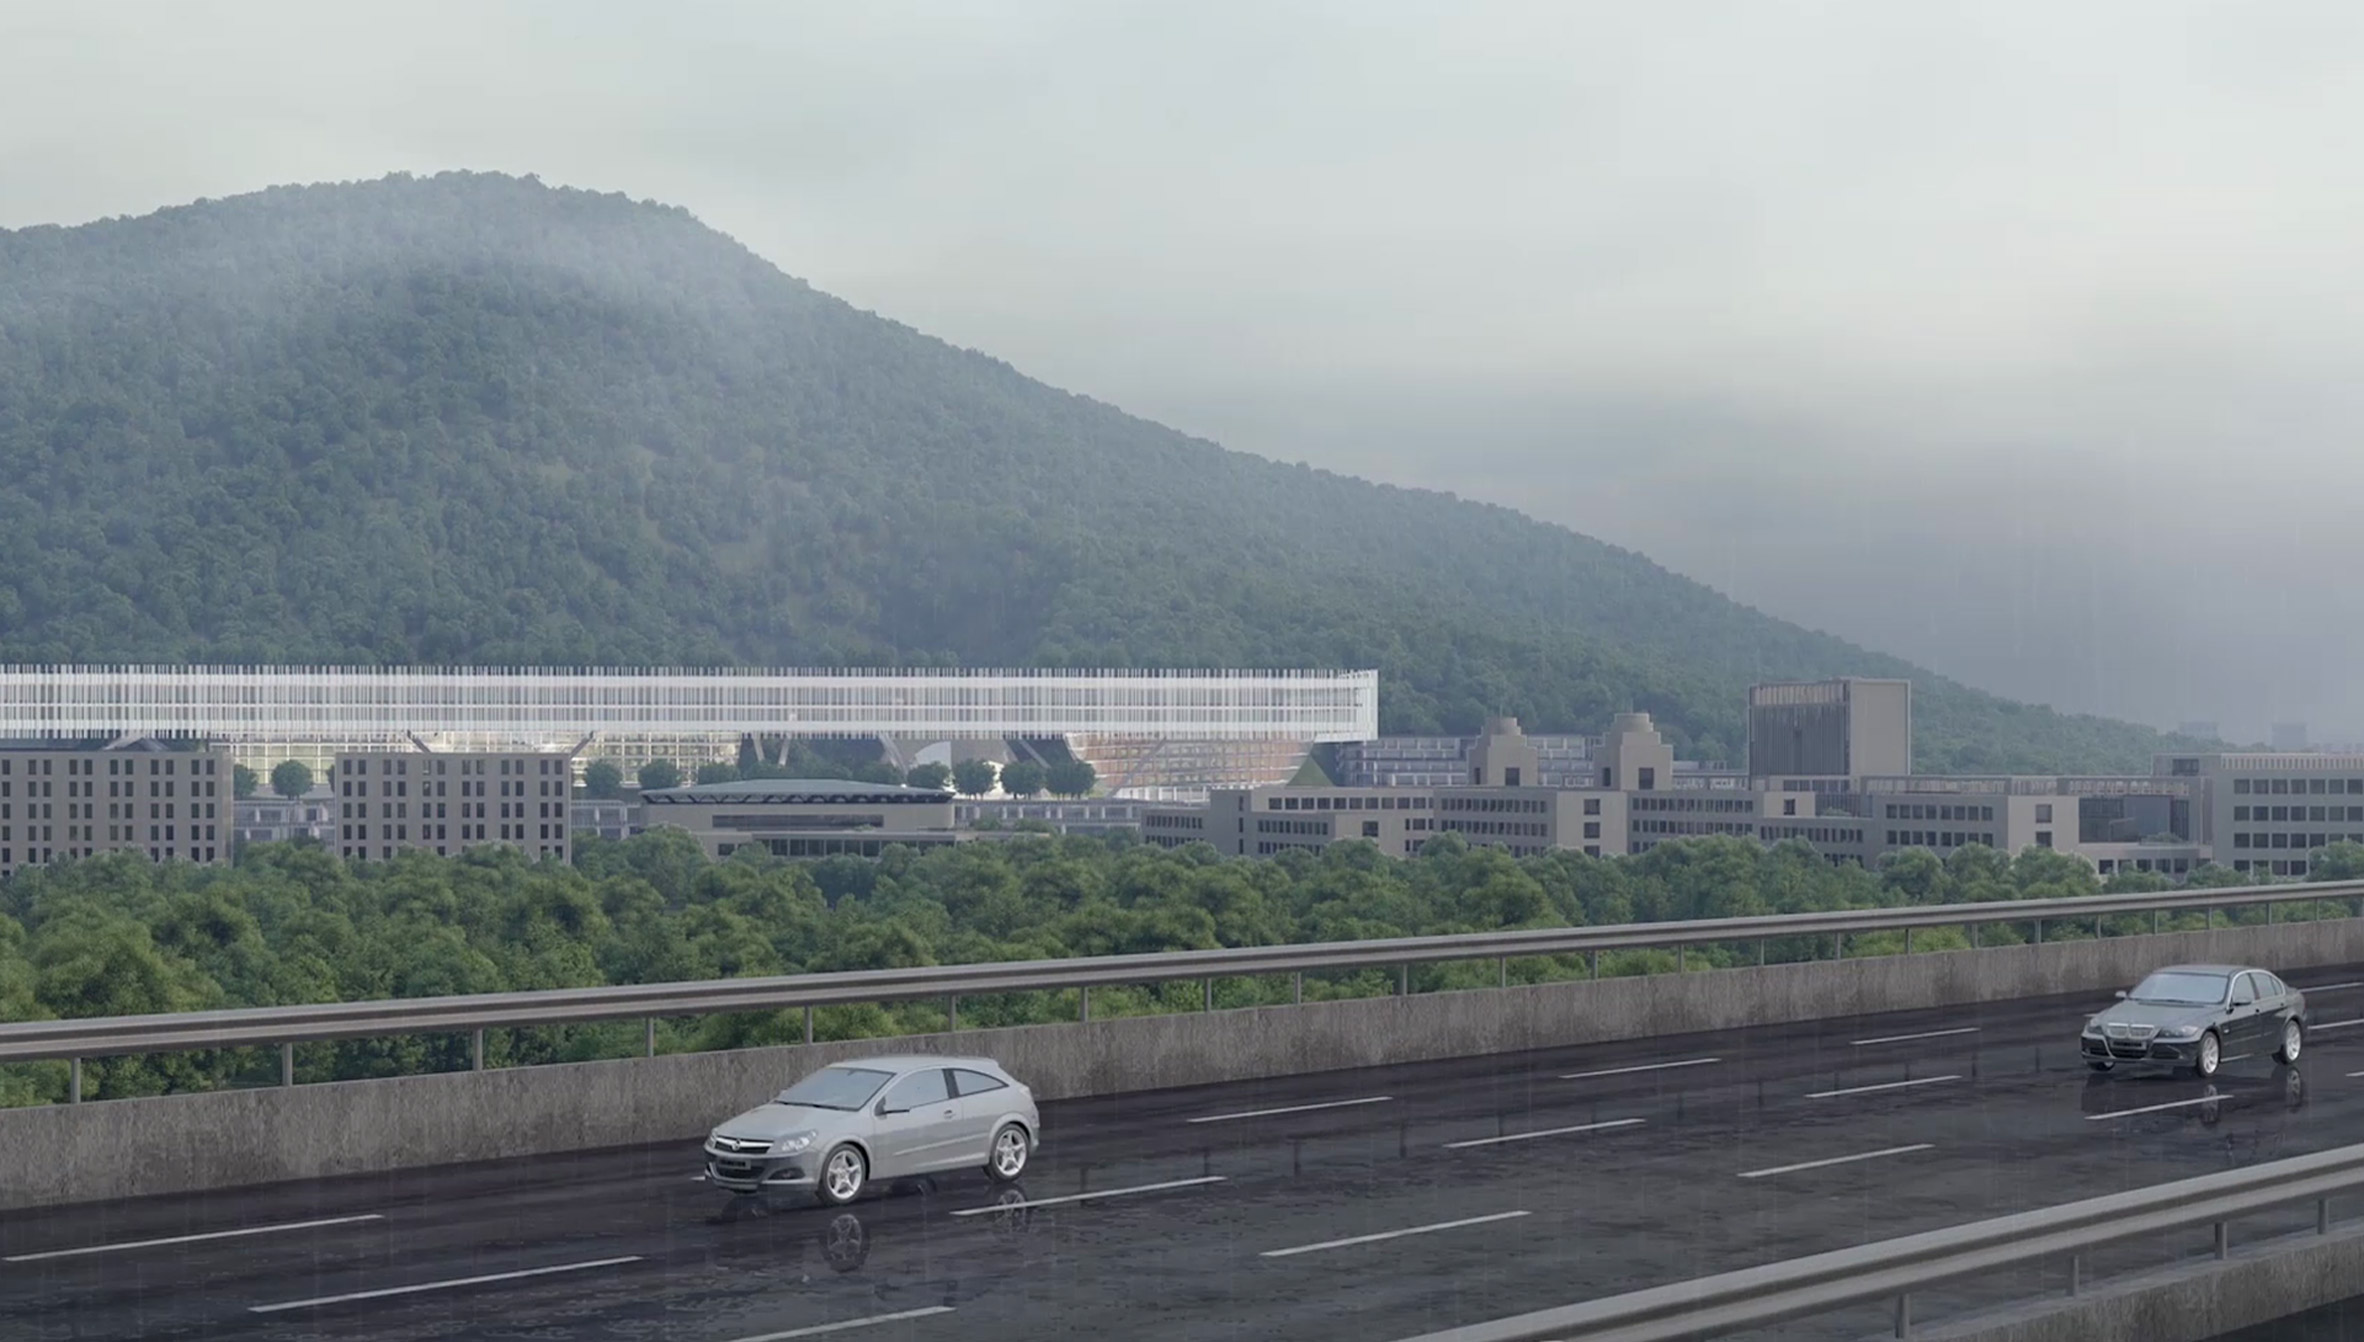 The design is 700 metres in length by Dominique Perrault Architects and Zhubo Design